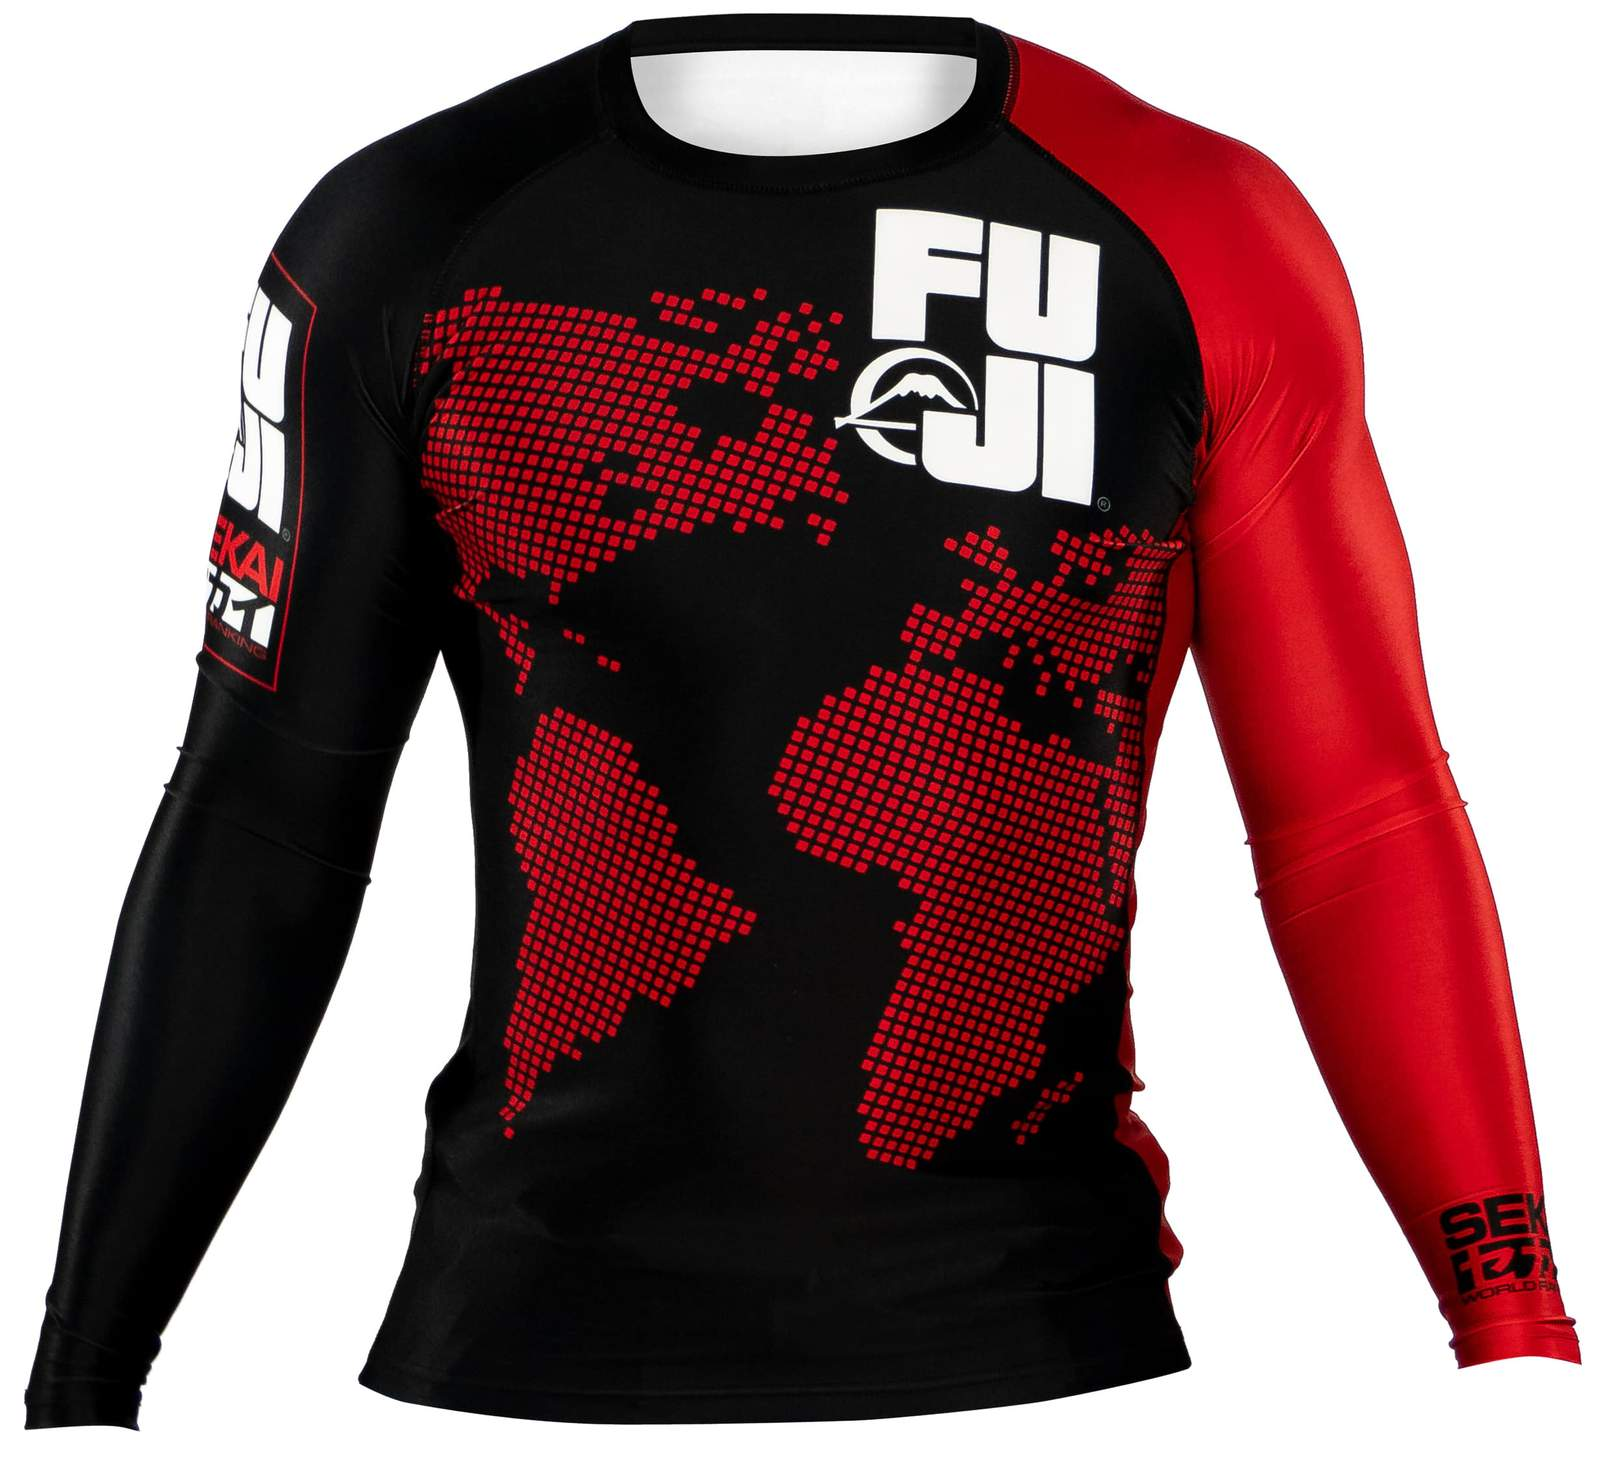 Fuji BJJ Sekai 2.0 Ranked Rashguard Customer Reviews